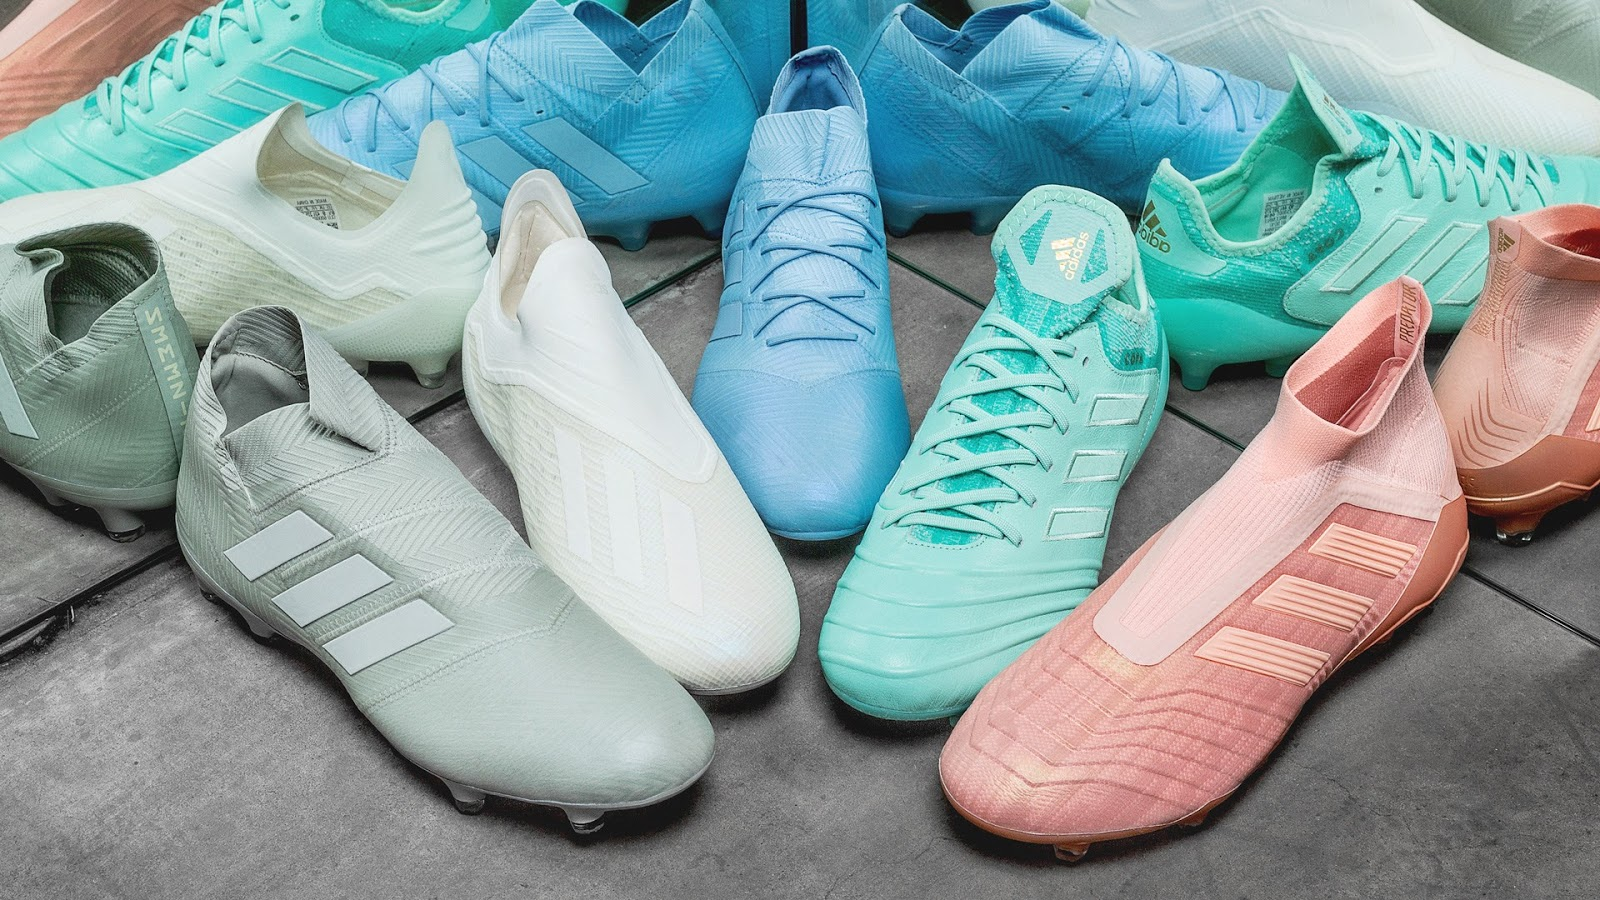 5664efe24 A new Adidas football boot collection, the Spectral Mode pack, has been  released today. The Adidas Spectral Mode pack includes pale new colorways  for all ...